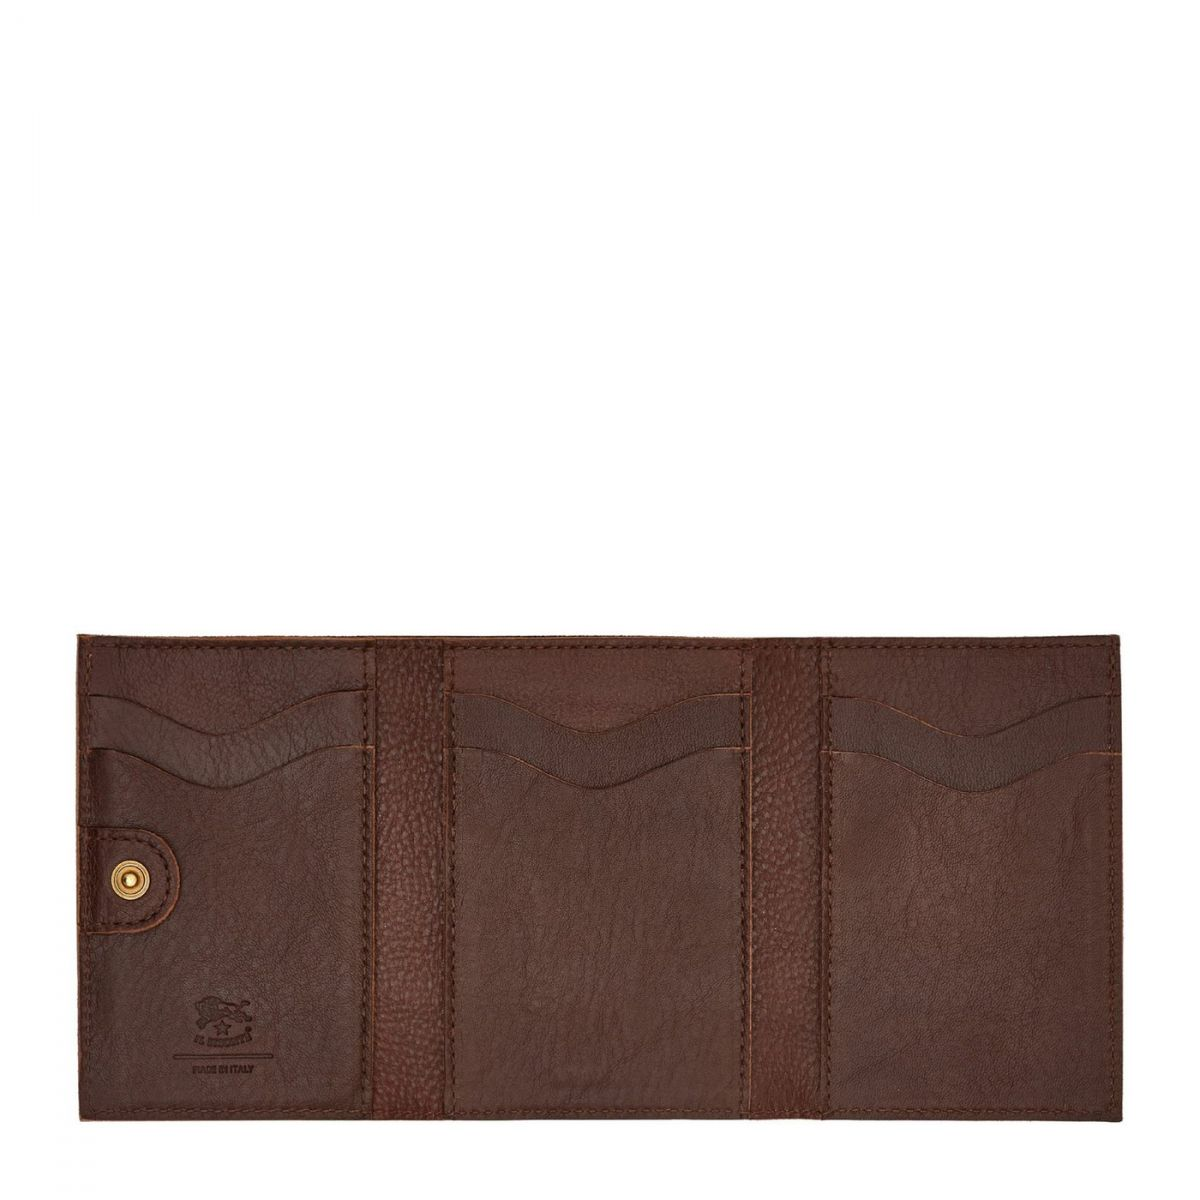 Women's Wallet  in Cowhide Leather SMW098 color Brown | Details